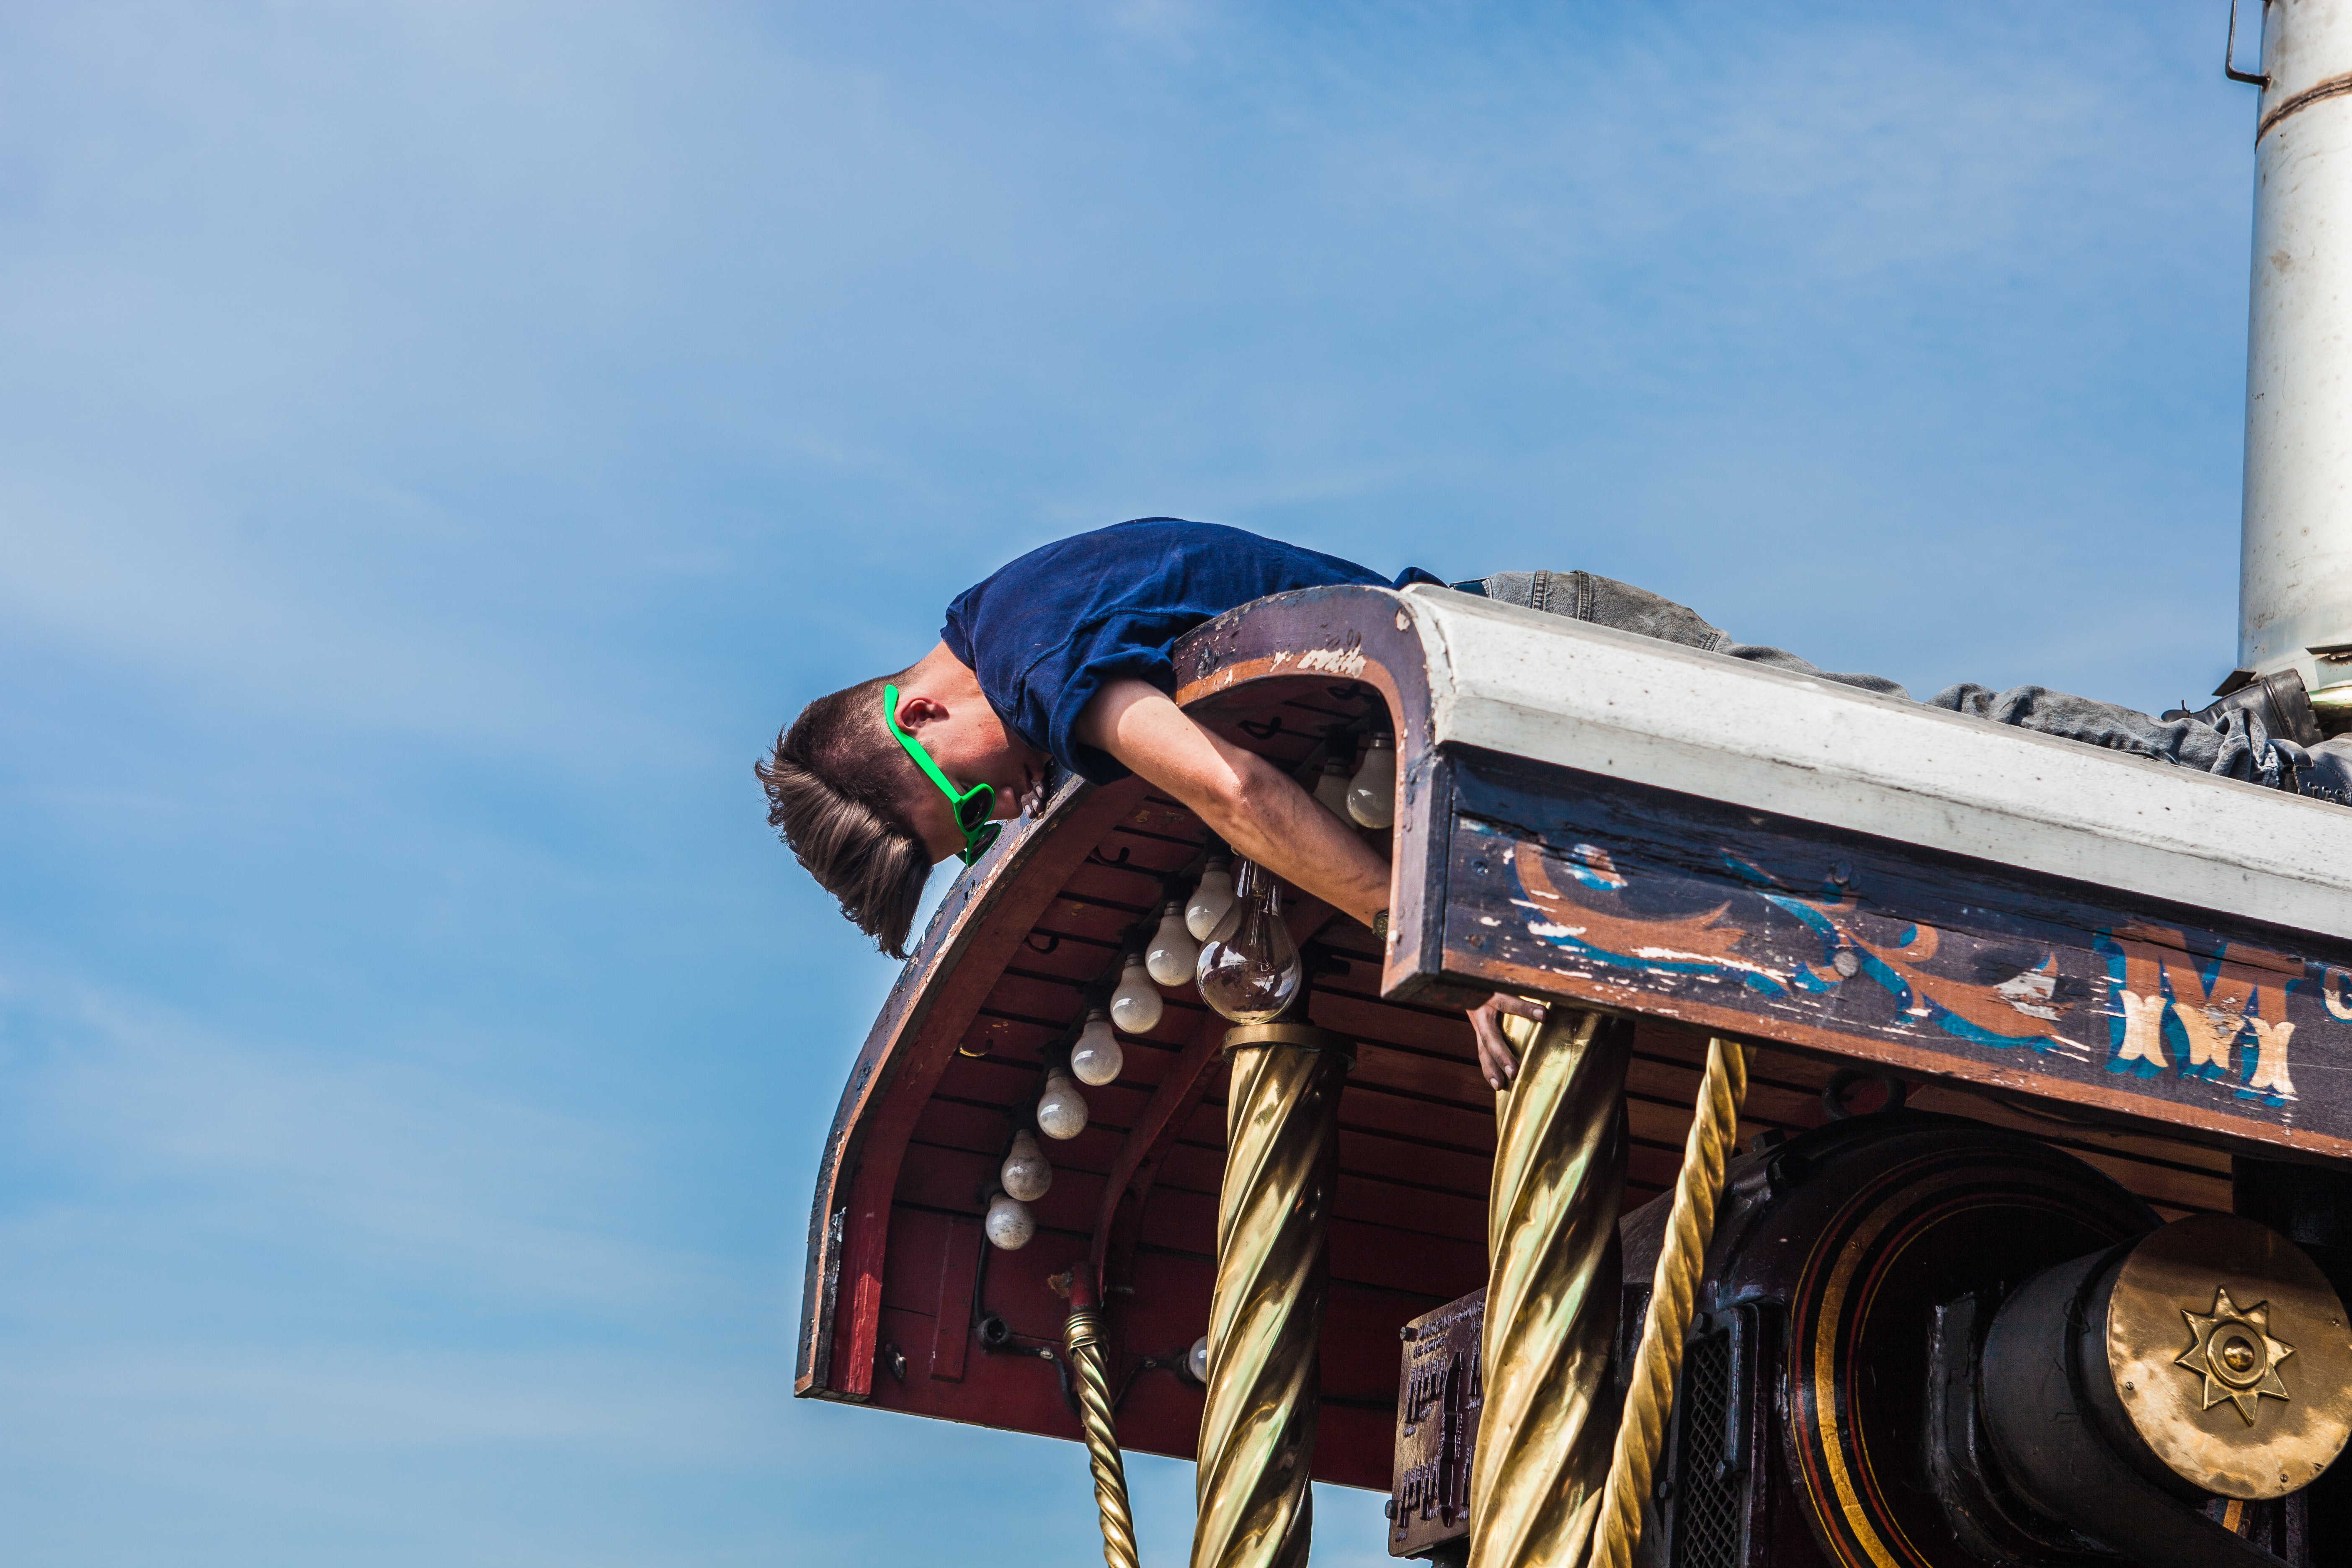 A man in sunglasses repairing a traction engine in a fairground